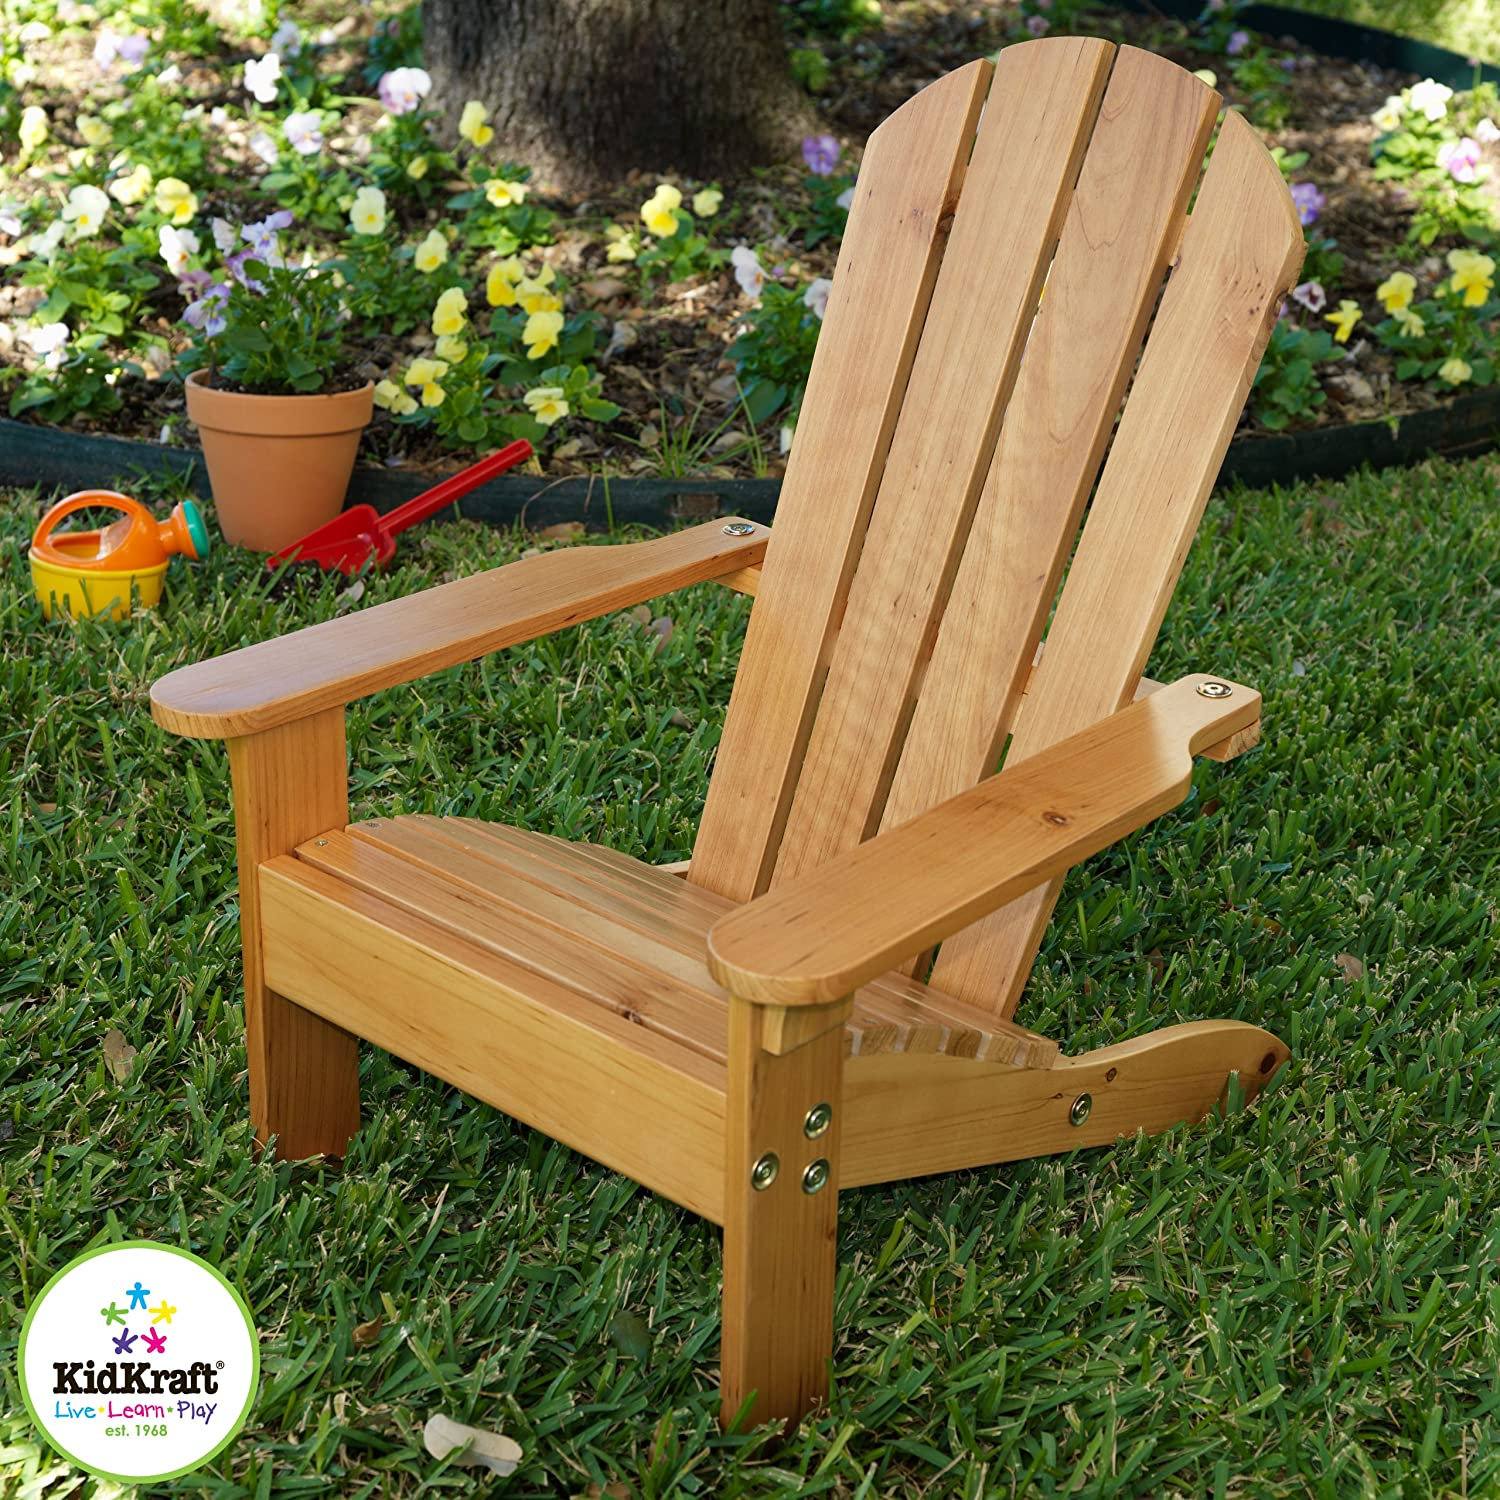 Amazon KidKraft Adirondack Chair White Toys & Games